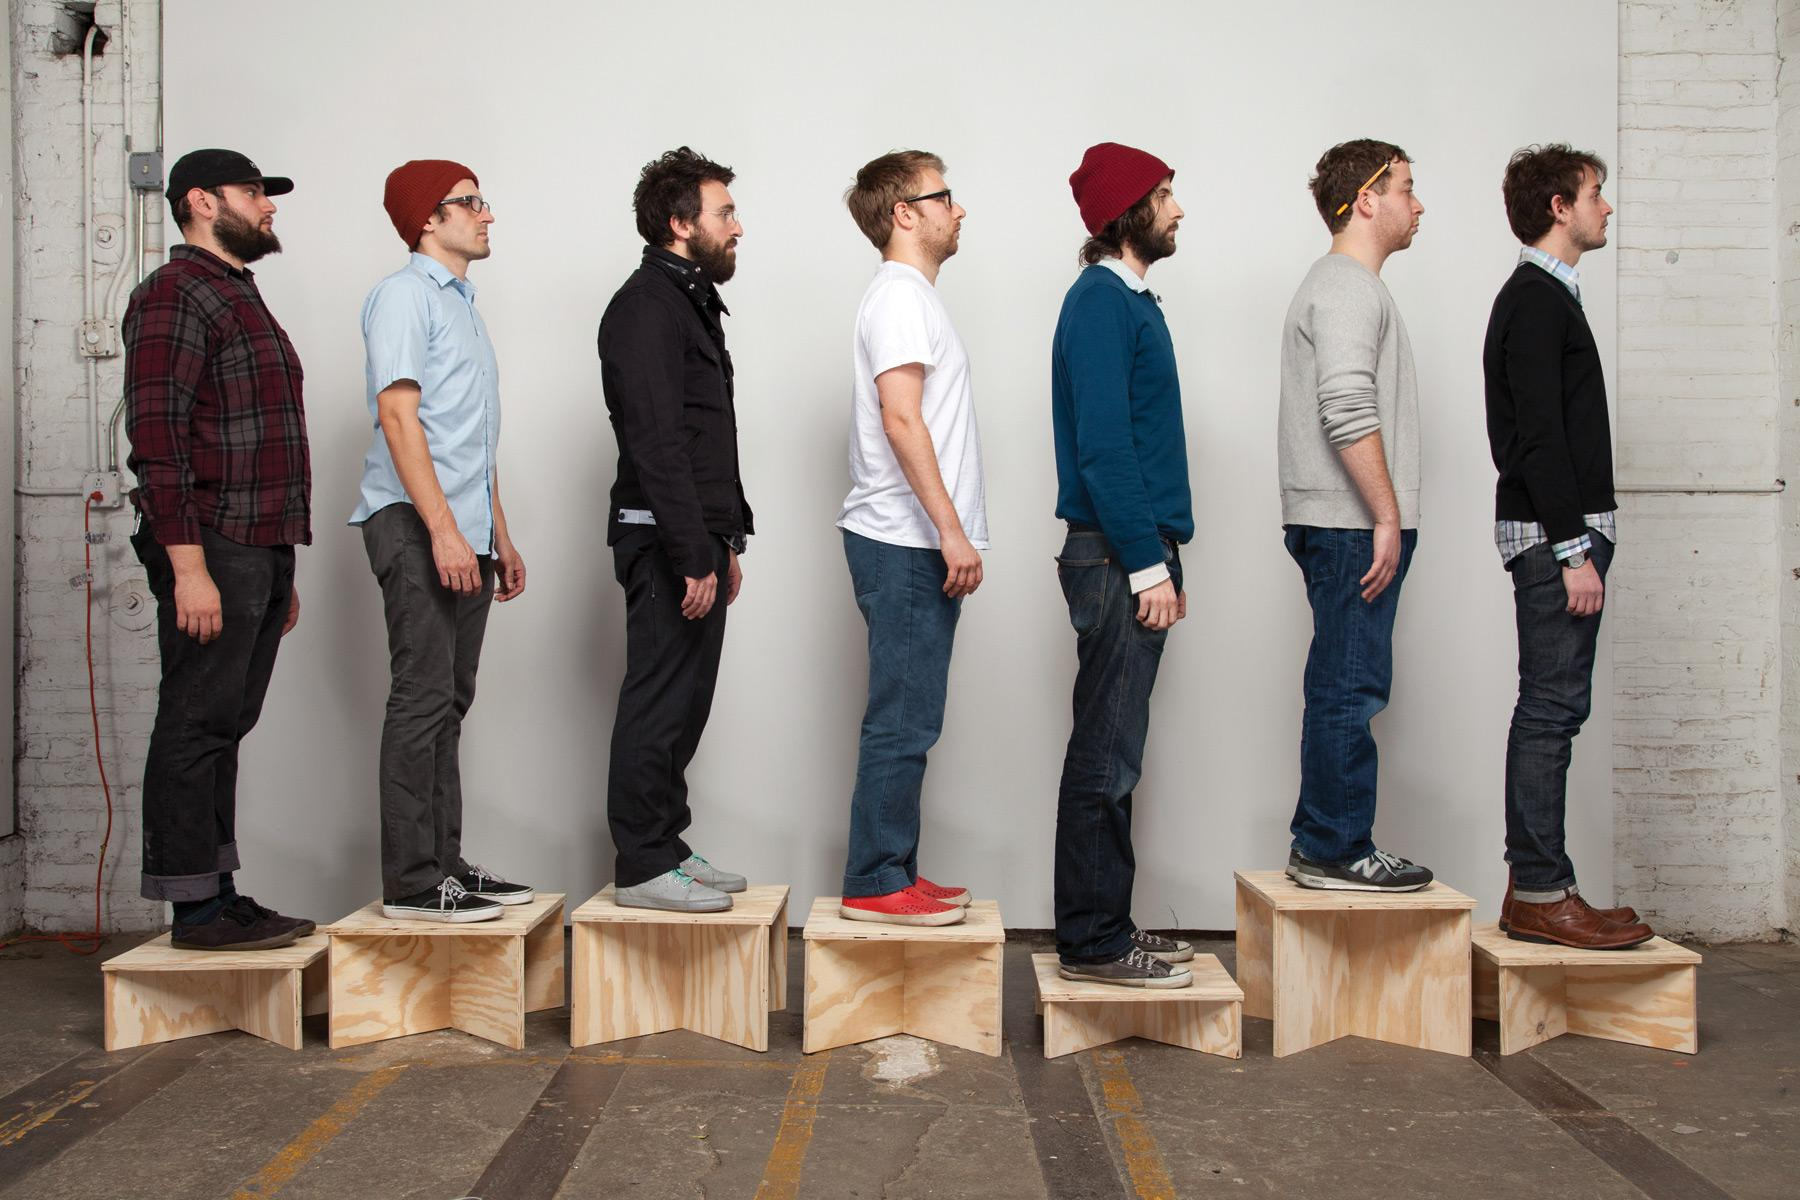 Seven light-skinned people stand in a line, facing toward your right. They are standing on various sized wooden boxes.